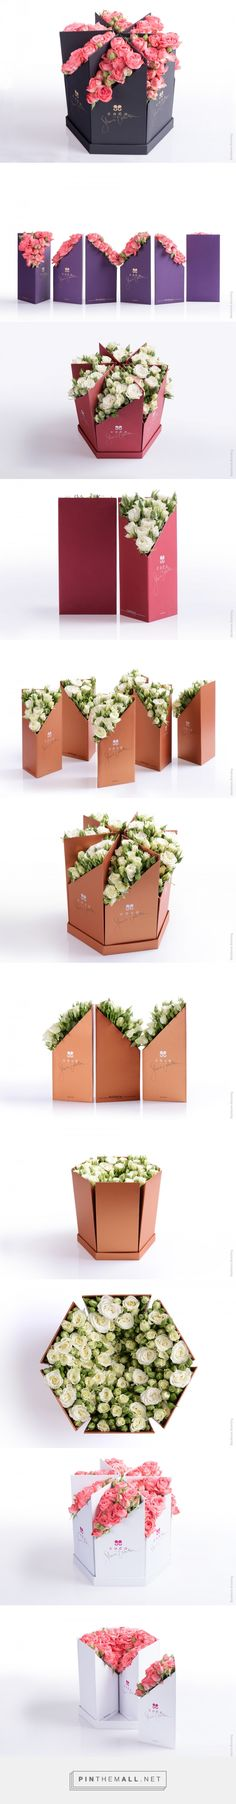 "Backbone Branding - Coco Fiori ""Share Collection"""